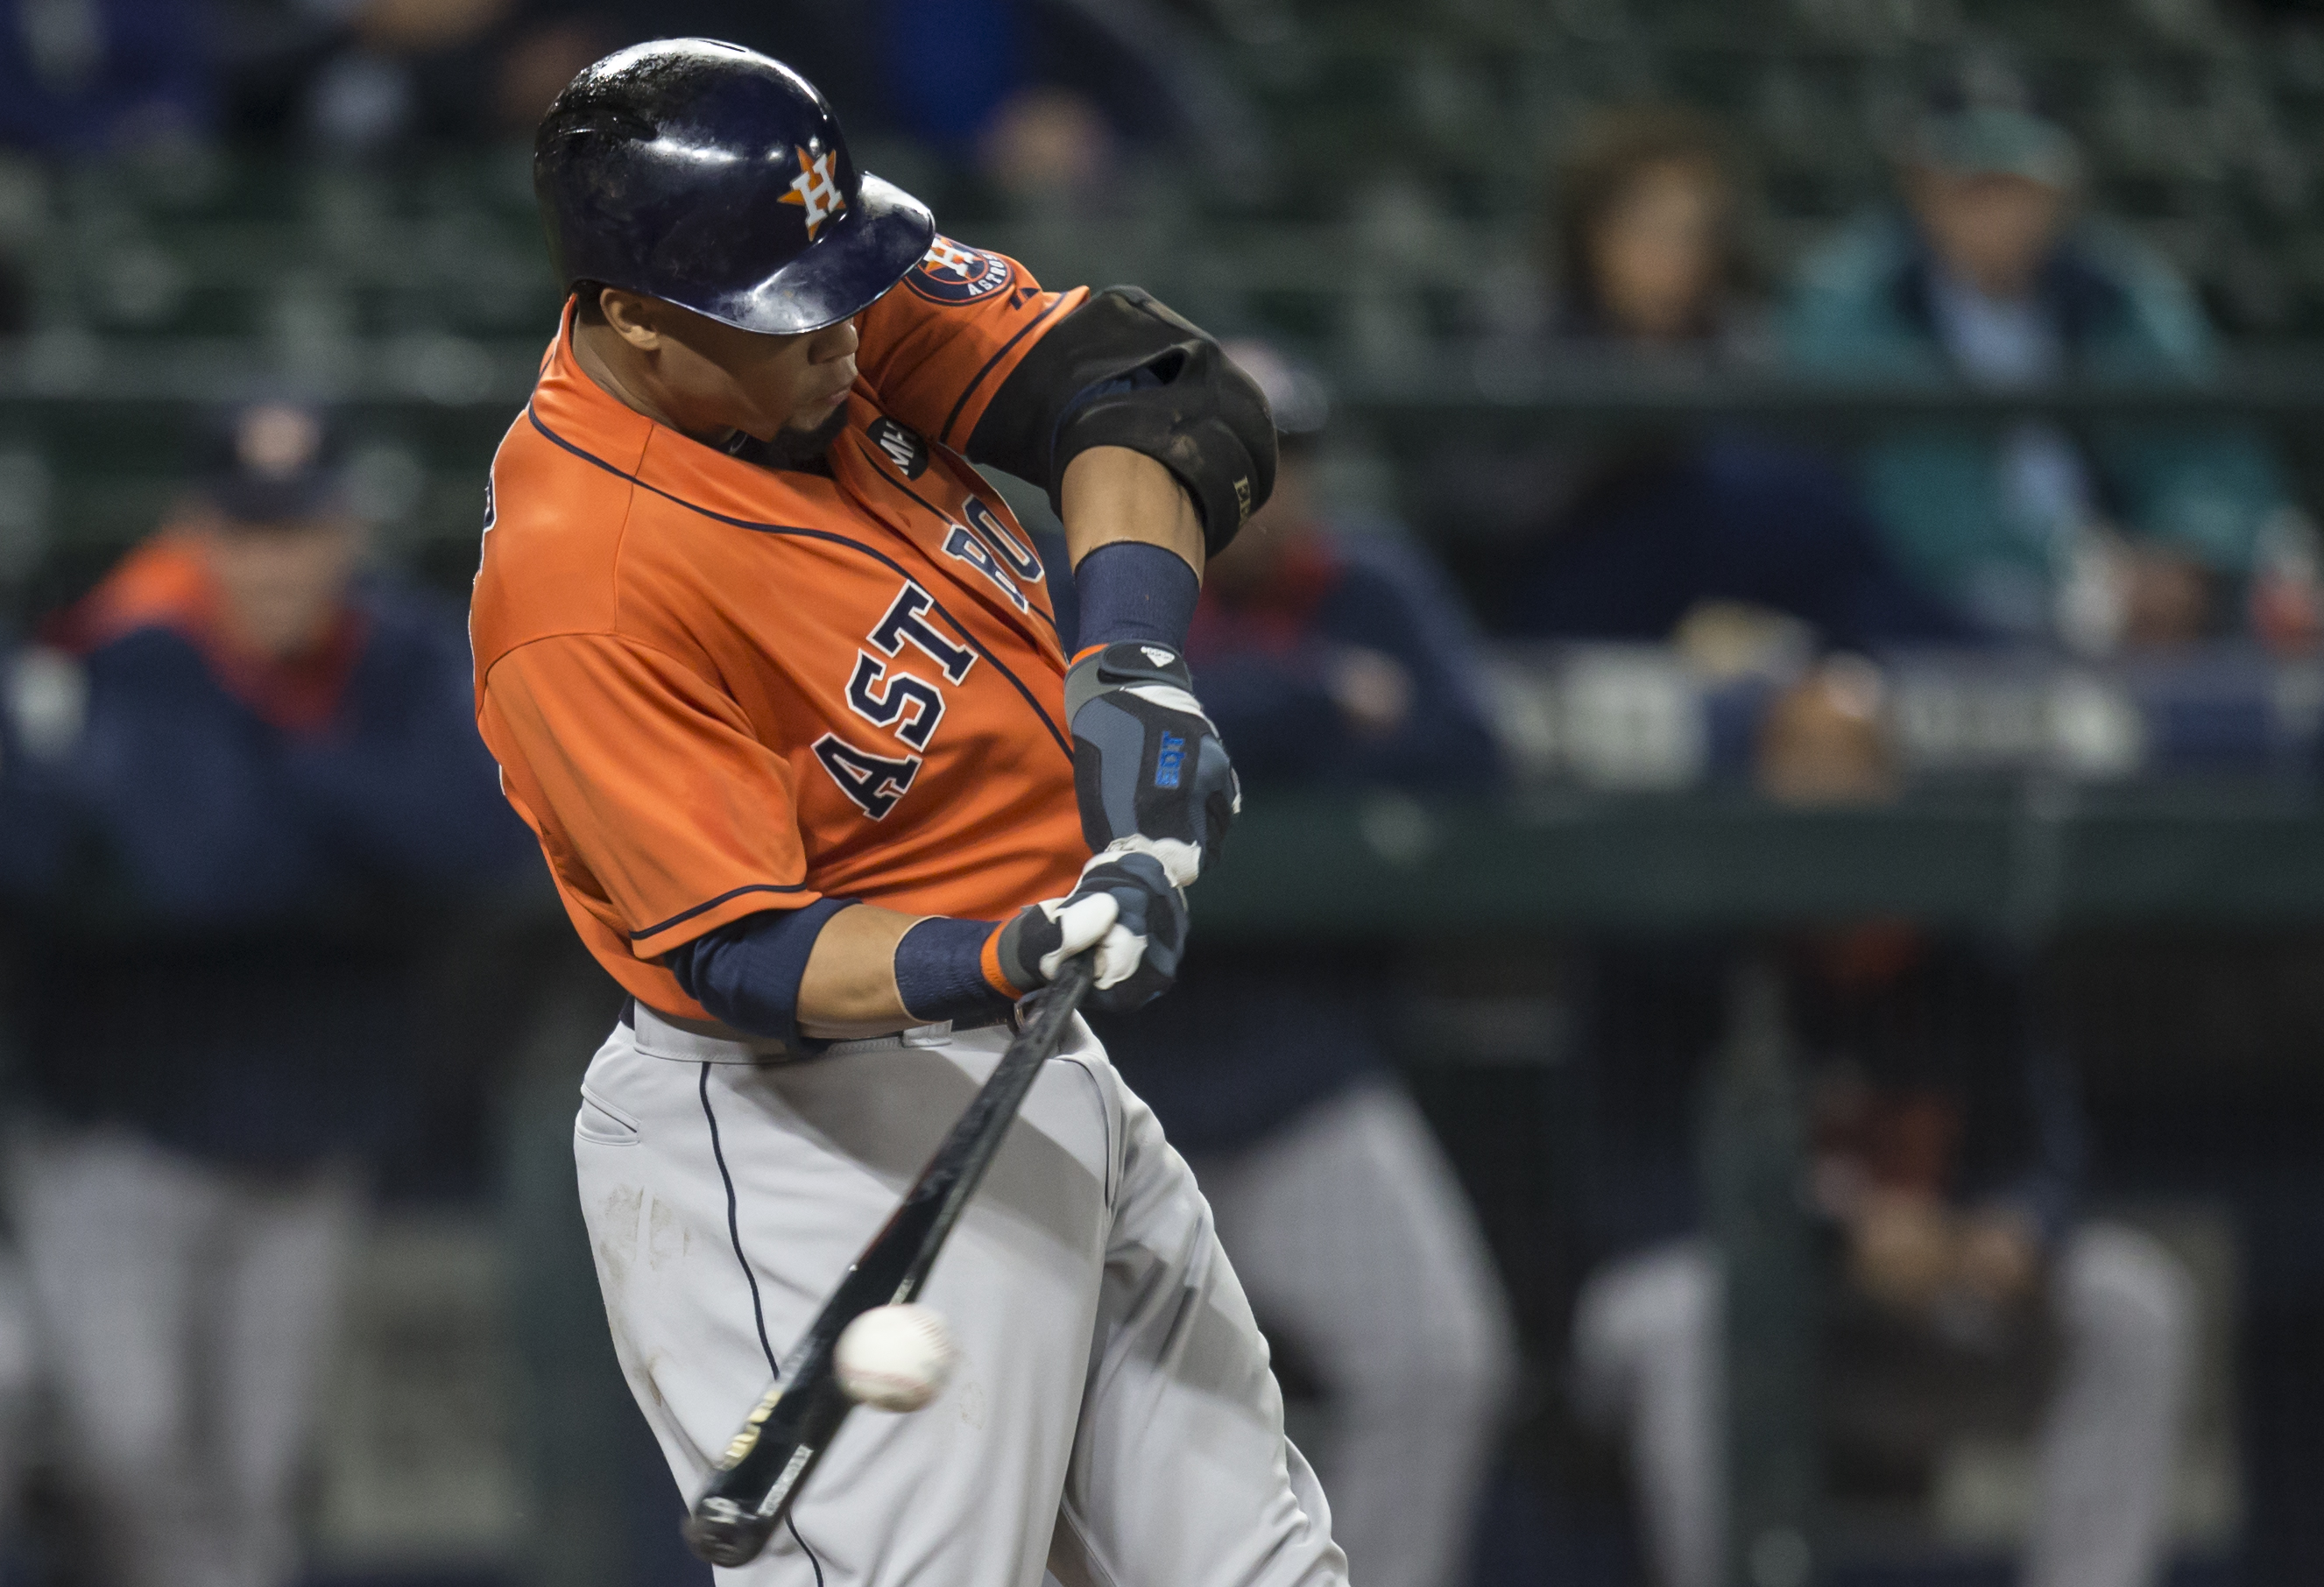 Houston Astros' Carlos Gomez hits a single during the second inning of a baseball game against the Seattle Mariners, Wednesday, Sept. 30, 2015, in Seattle. (AP Photo/Stephen Brashear)